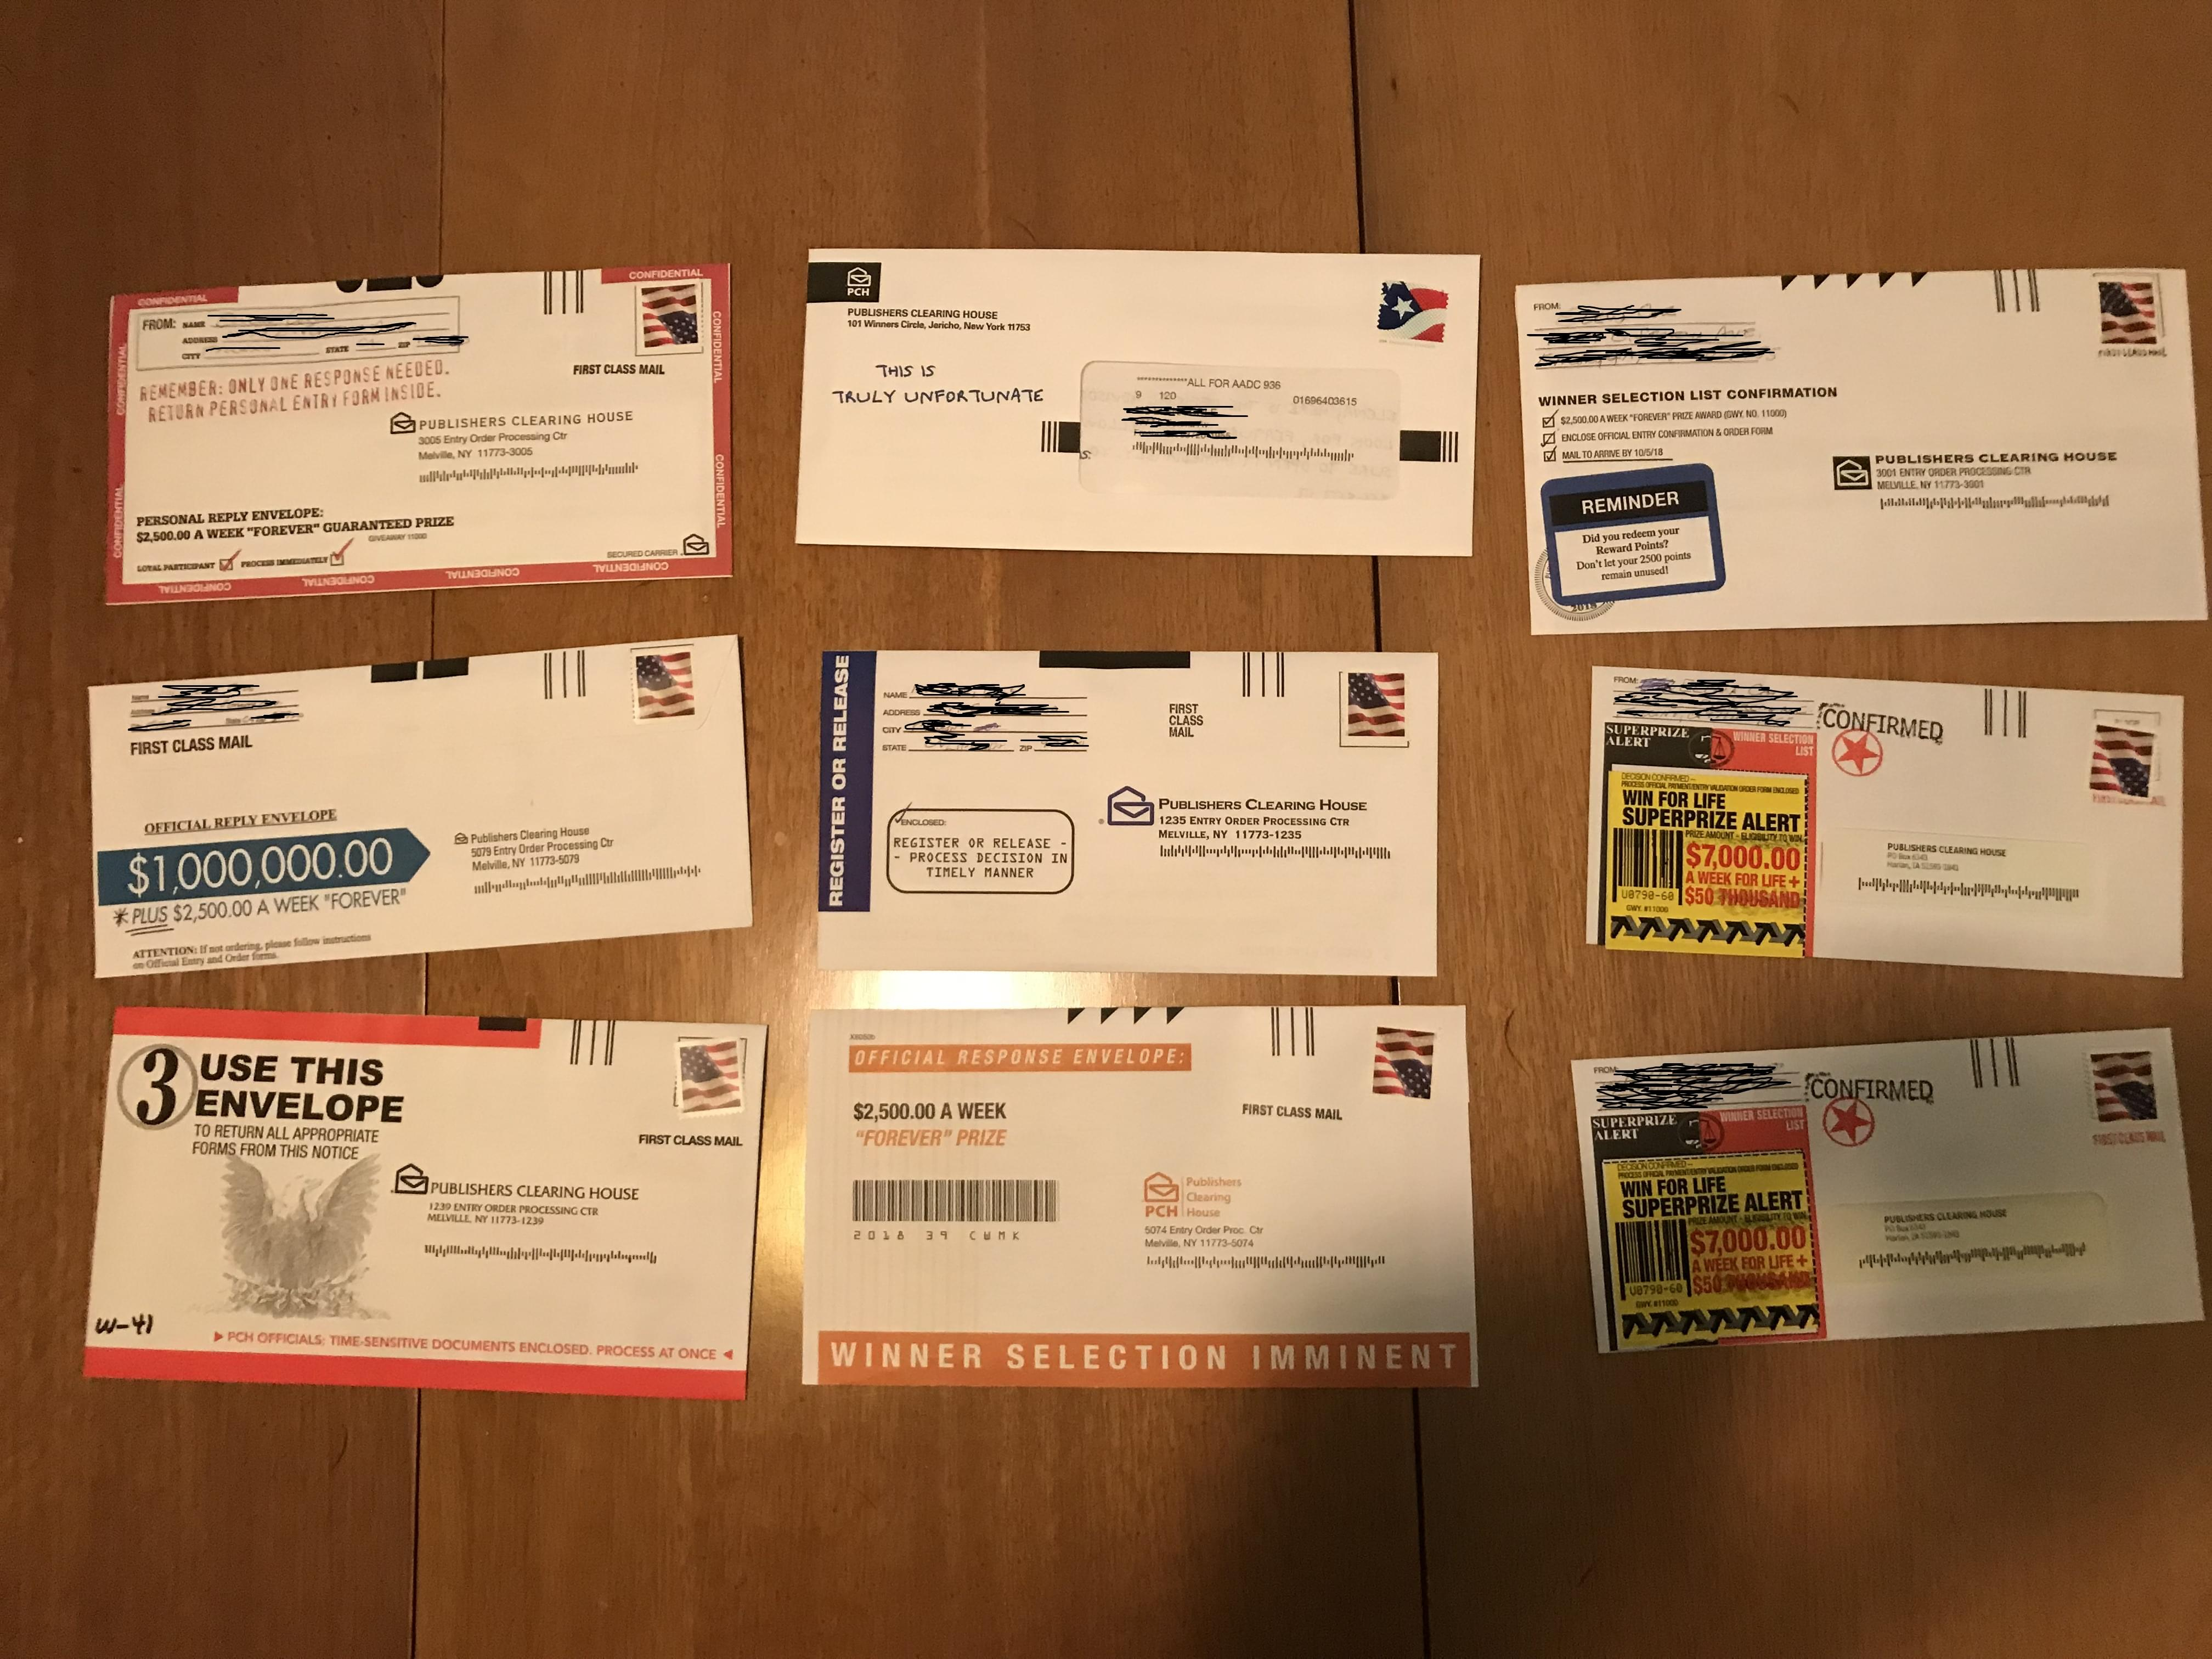 Sending The Publishers Clearing House Mail For My Elderly